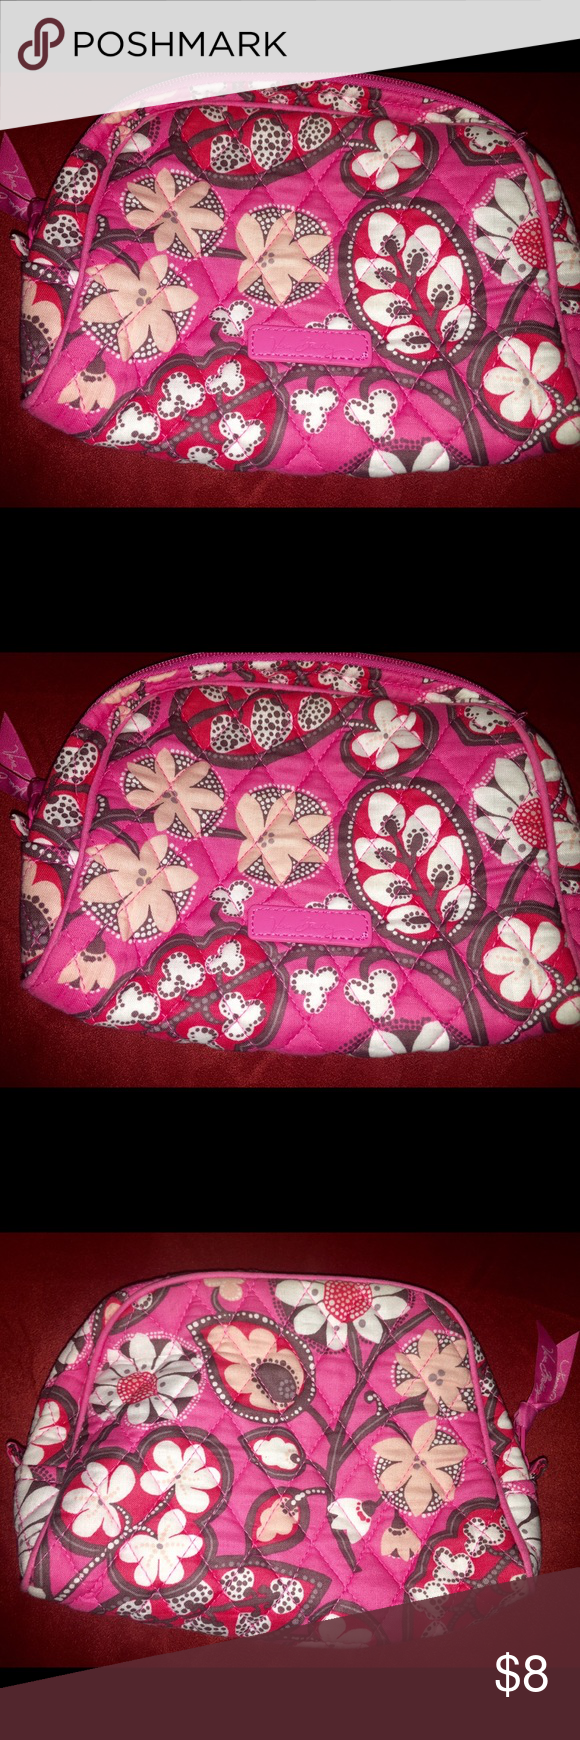 Pink Floral Vera Bradley Cosmetic Bag 🌺🌺🌺 Pretty Vera Bradley Pink Cosmetic Bag. 🌺🌺🌺 Vera Bradley Bags Cosmetic Bags & Cases